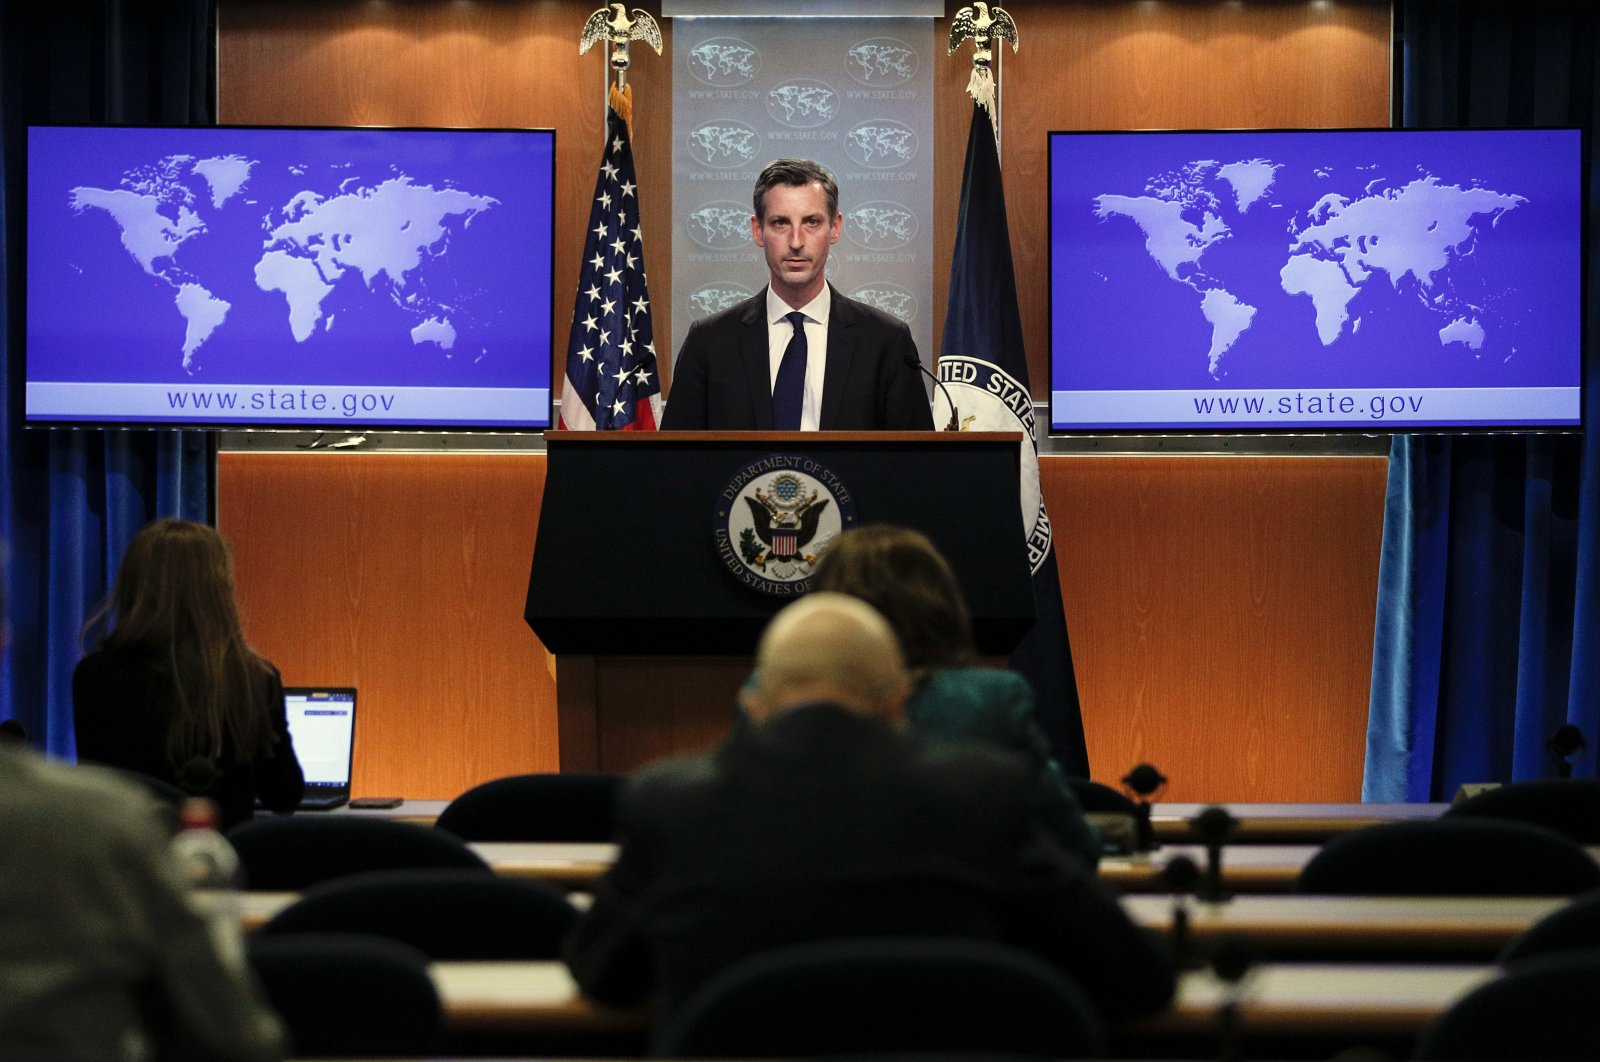 U.S. State Department Spokesperson Ned Price speaks to reporters during a news briefing at the State Department in Washington, the U.S., March 1, 2021. (AP Photo)